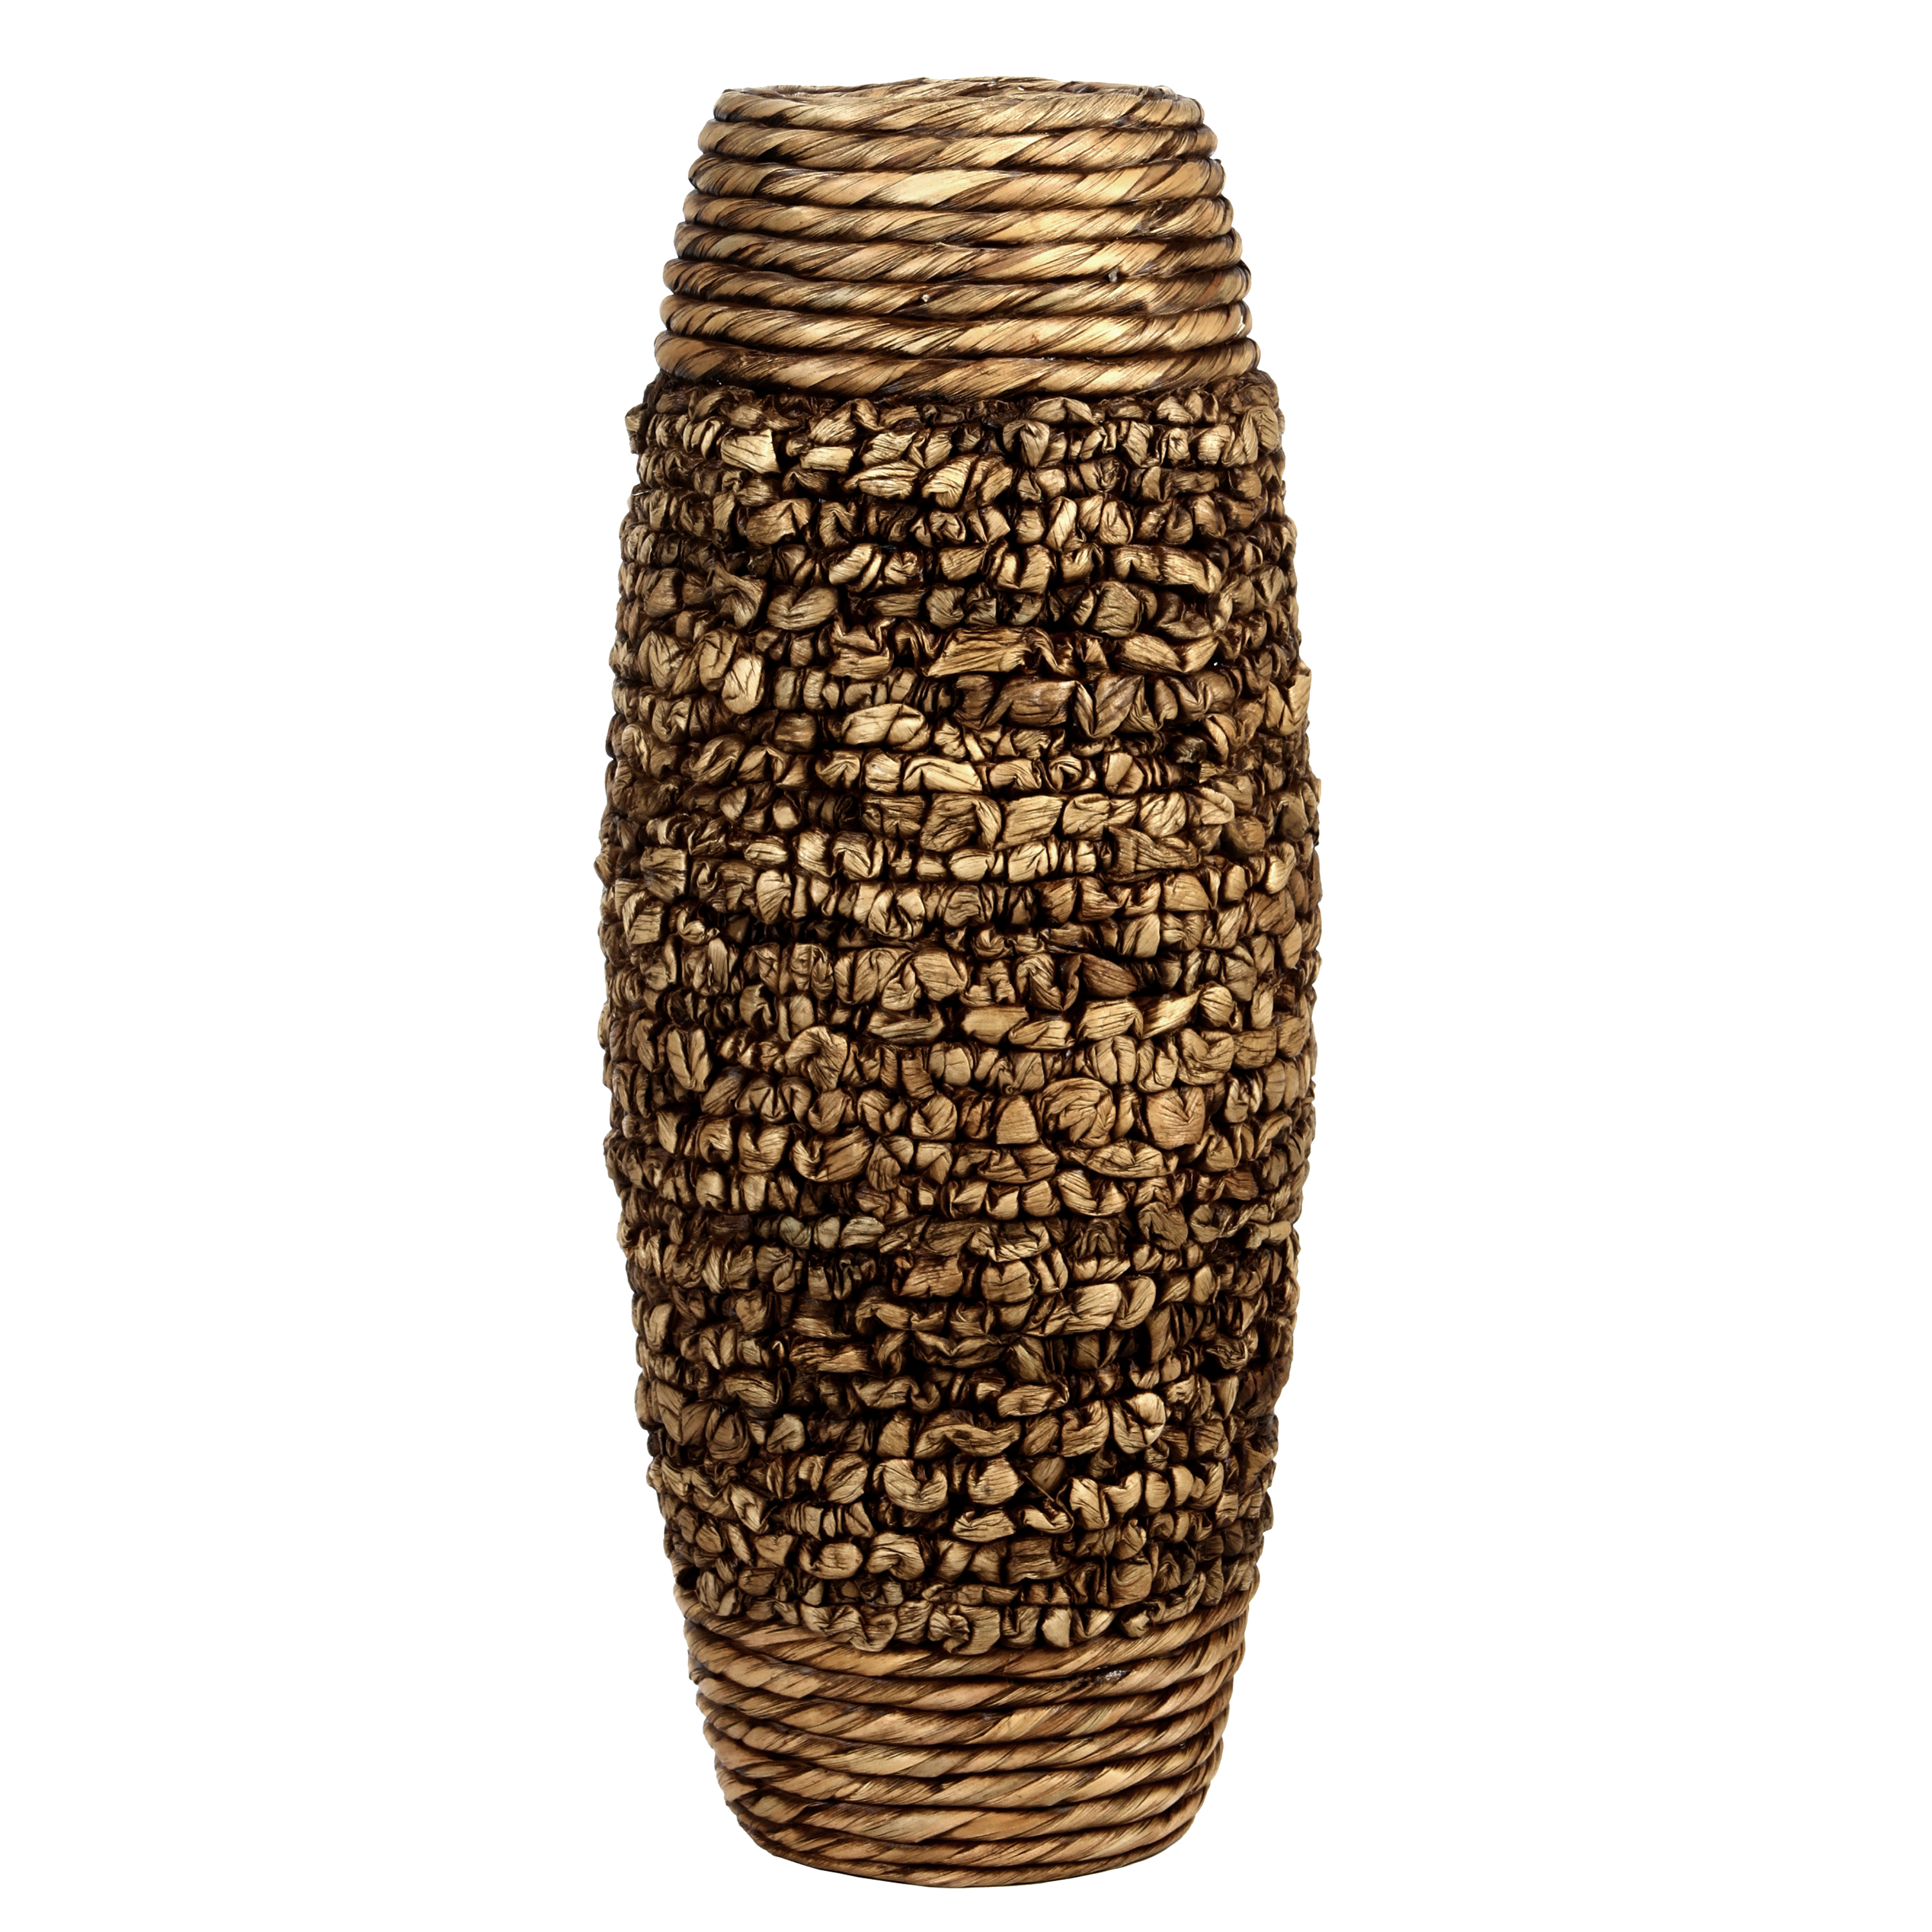 Elegant Expressions by Hosley Natural Water Hyacinth Vase, Brown